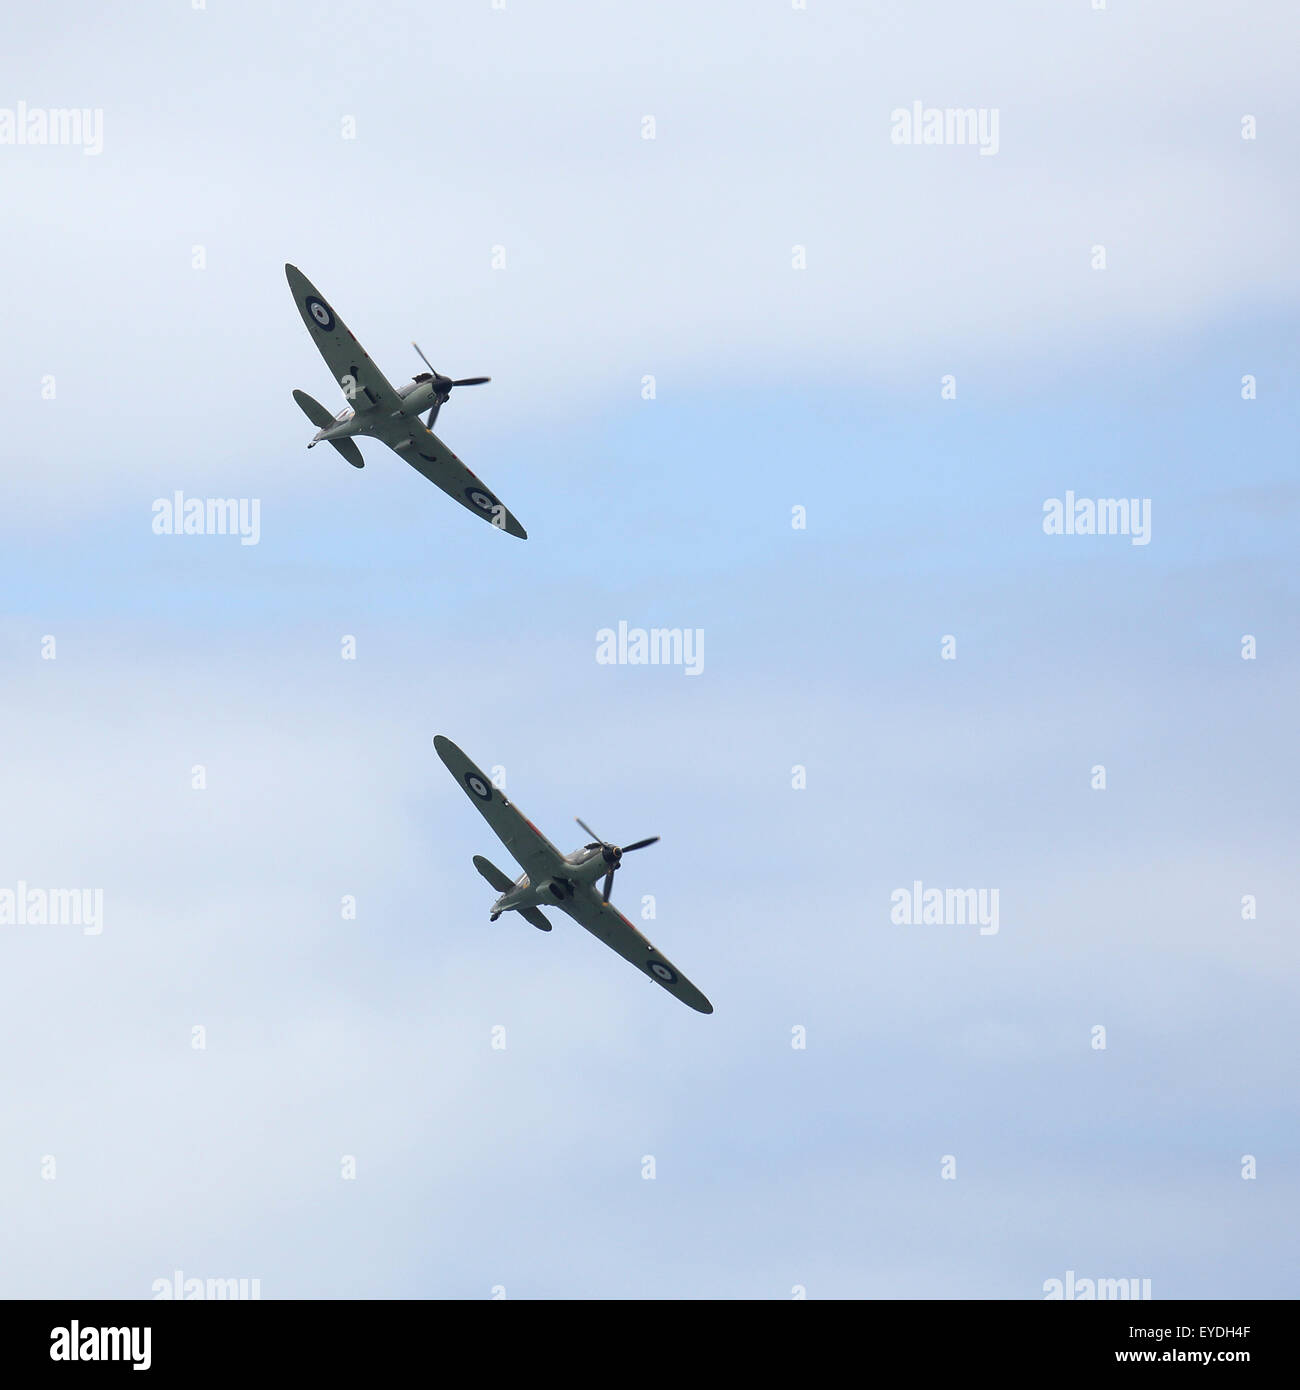 A Spitfire and a Hurricane, fighter aircraft from World War Two, perform at Sunderland International Airshow. - Stock Image